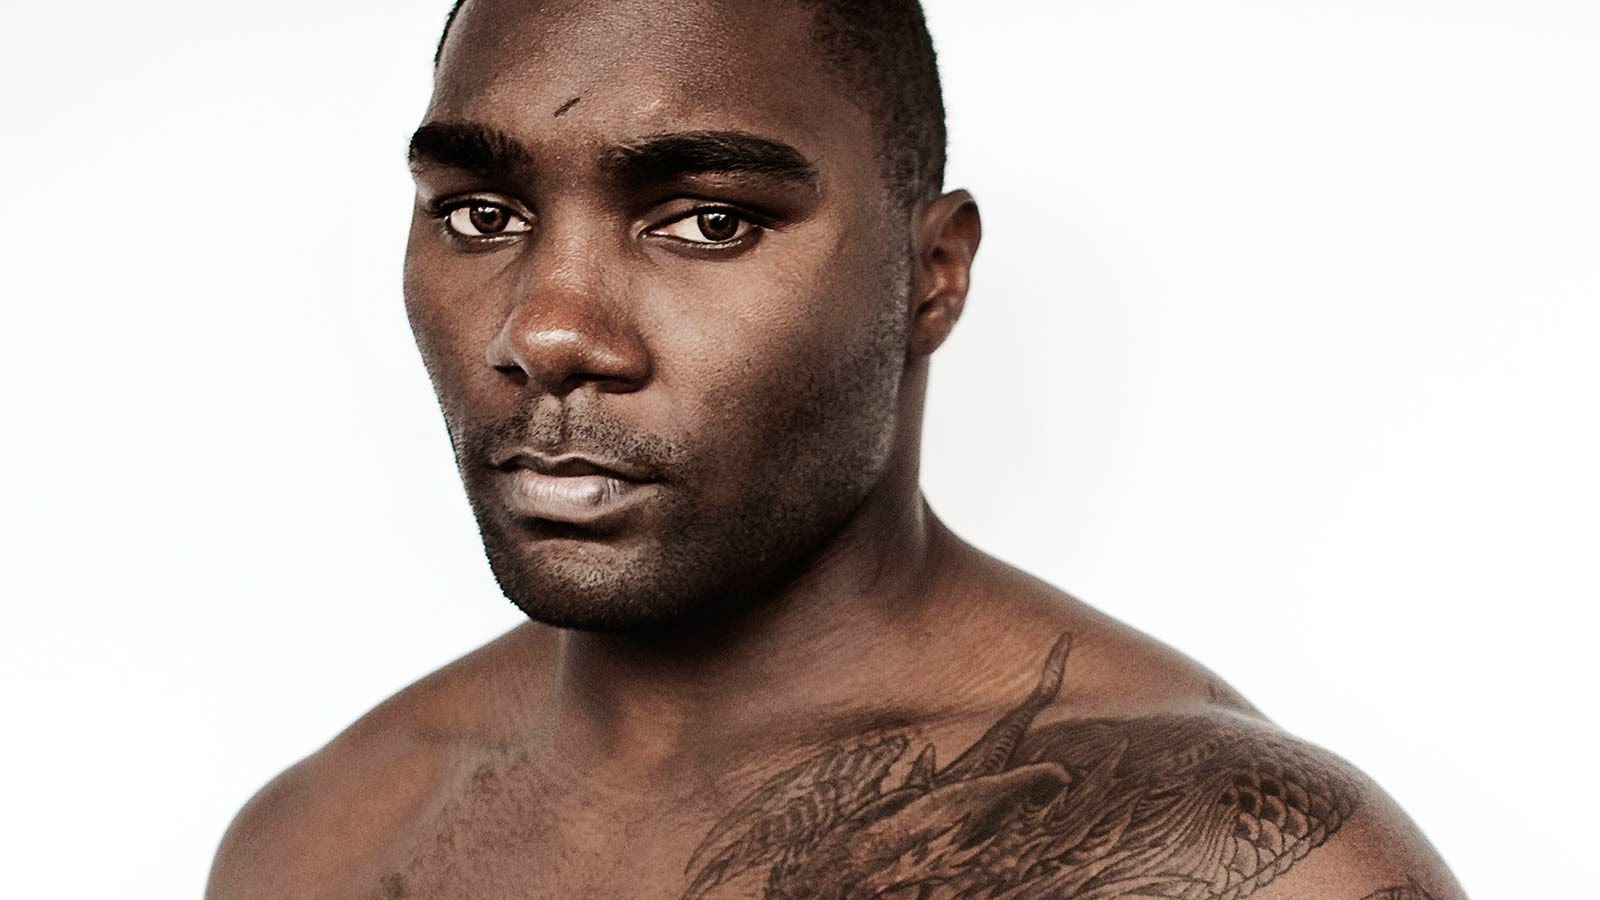 020614 ufc Anthony Johnson pi mp